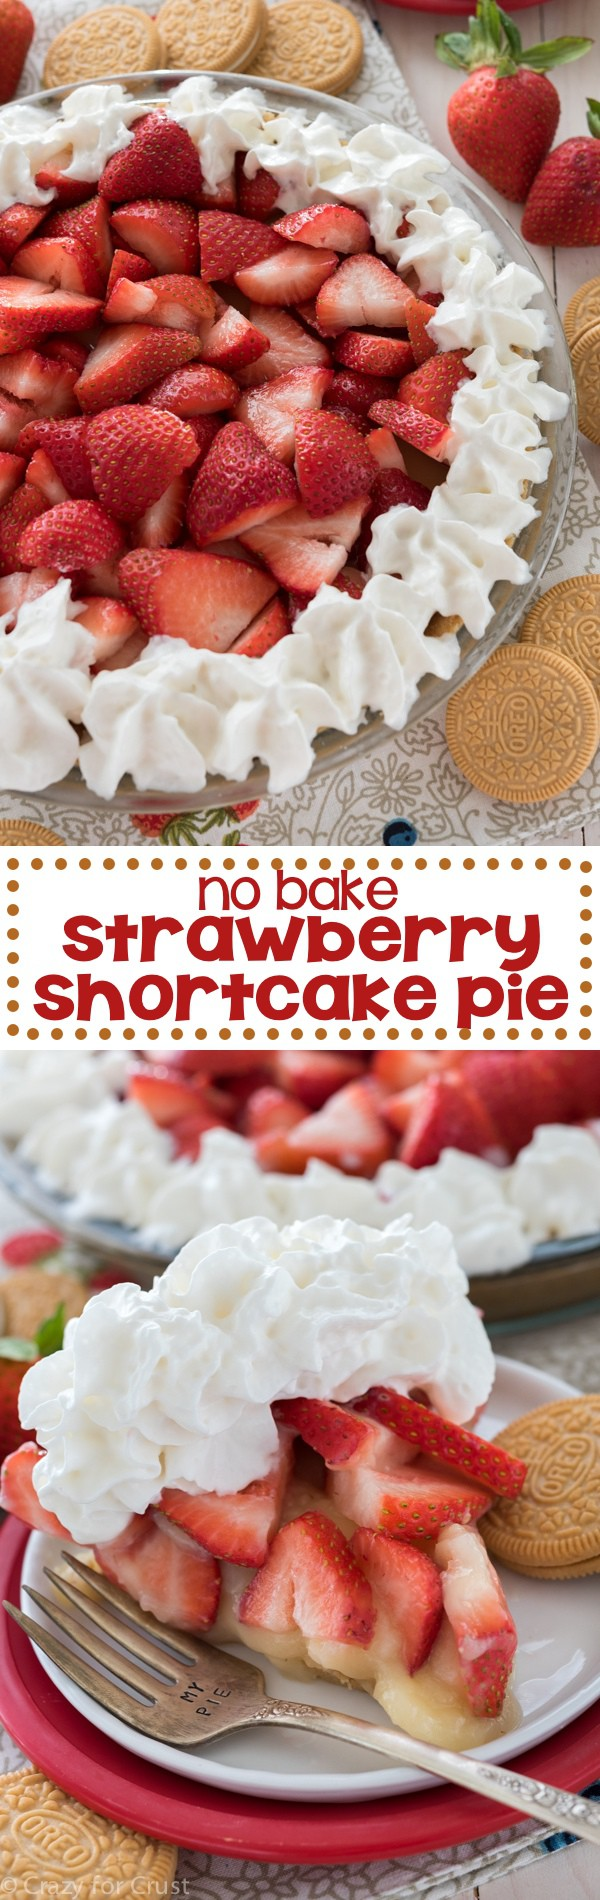 EASY No Bake Strawberry Shortcake Pie - just a few ingredients to a fresh summer pie!